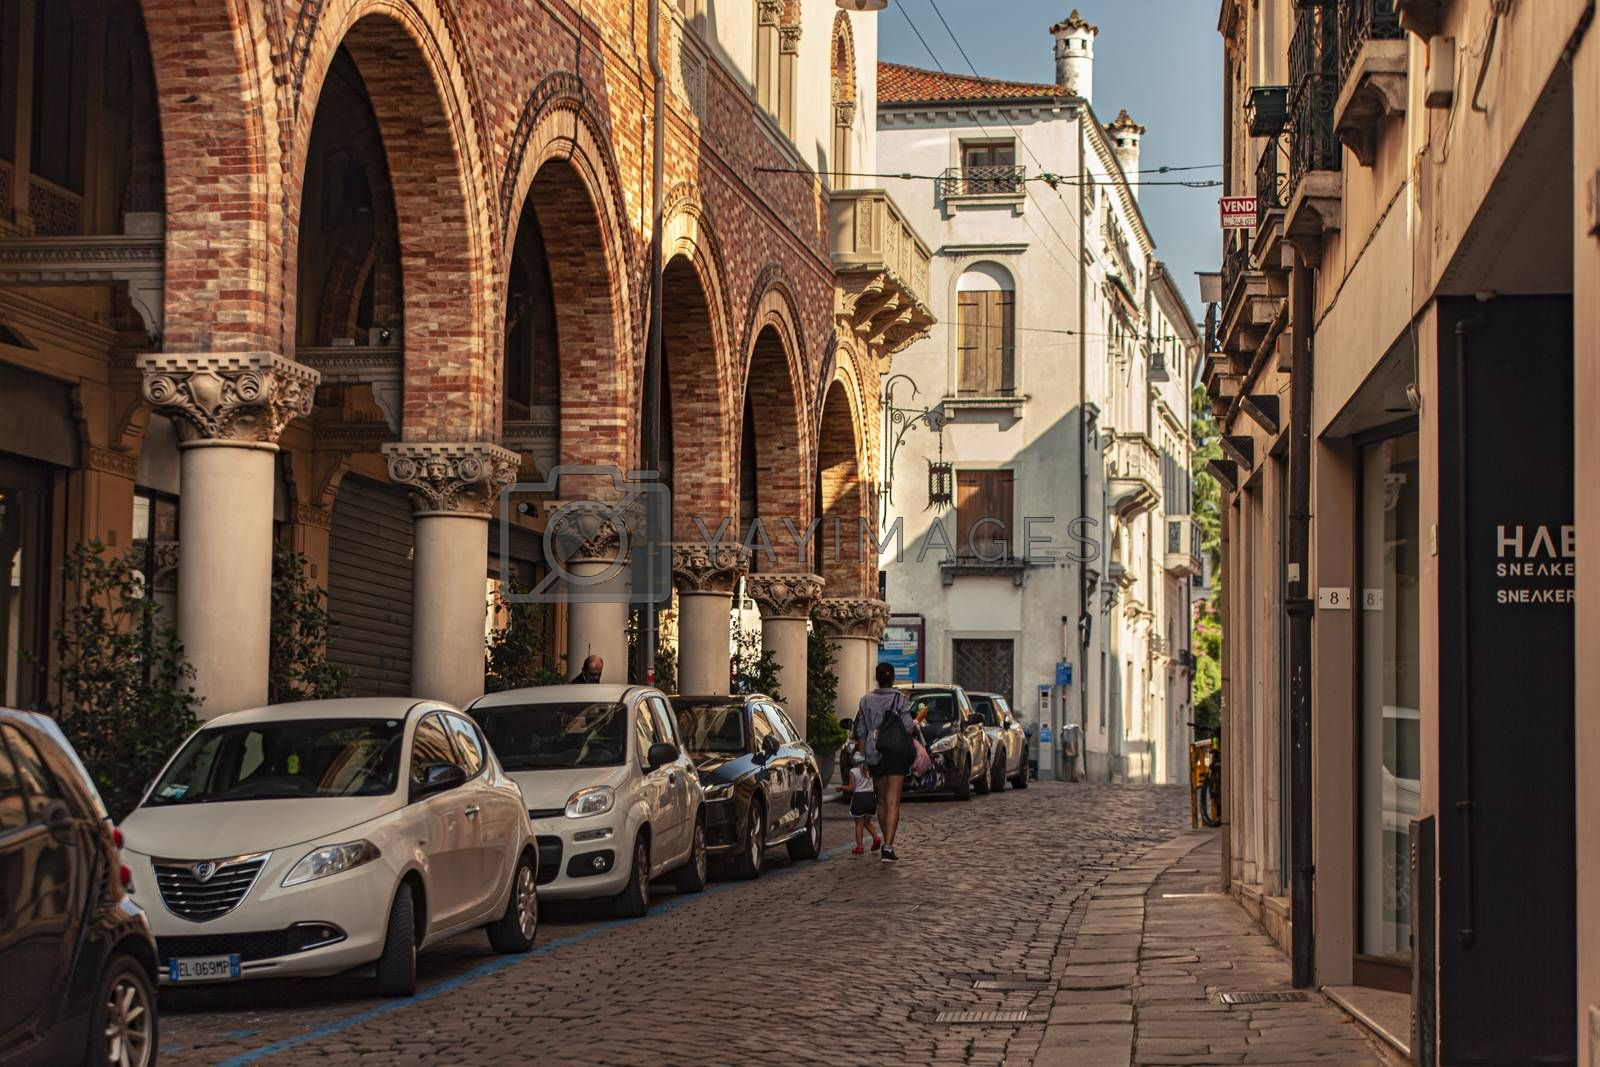 TREVISO, ITALY 13 AUGUST 2020: View of Calamaggiore one of the main street in Treviso in Italy